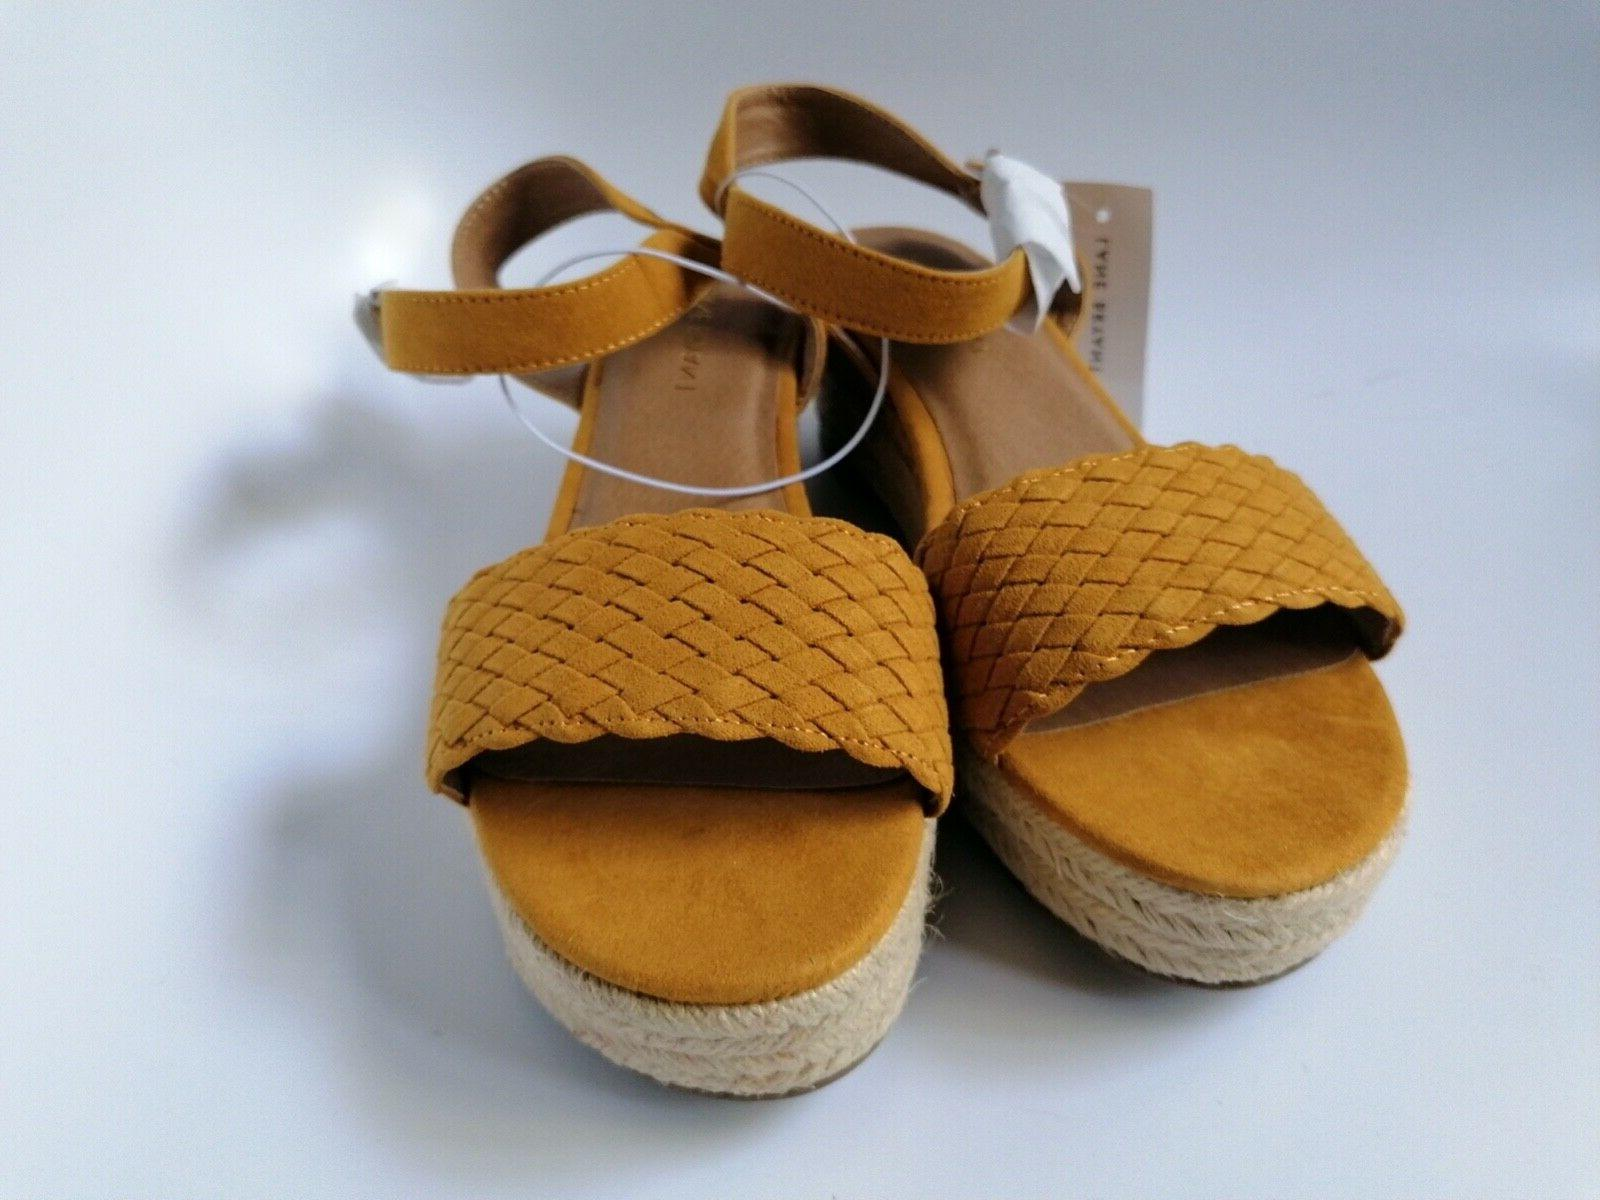 Lane Bryant Sandals, Yellow, Women's Size New with Tags